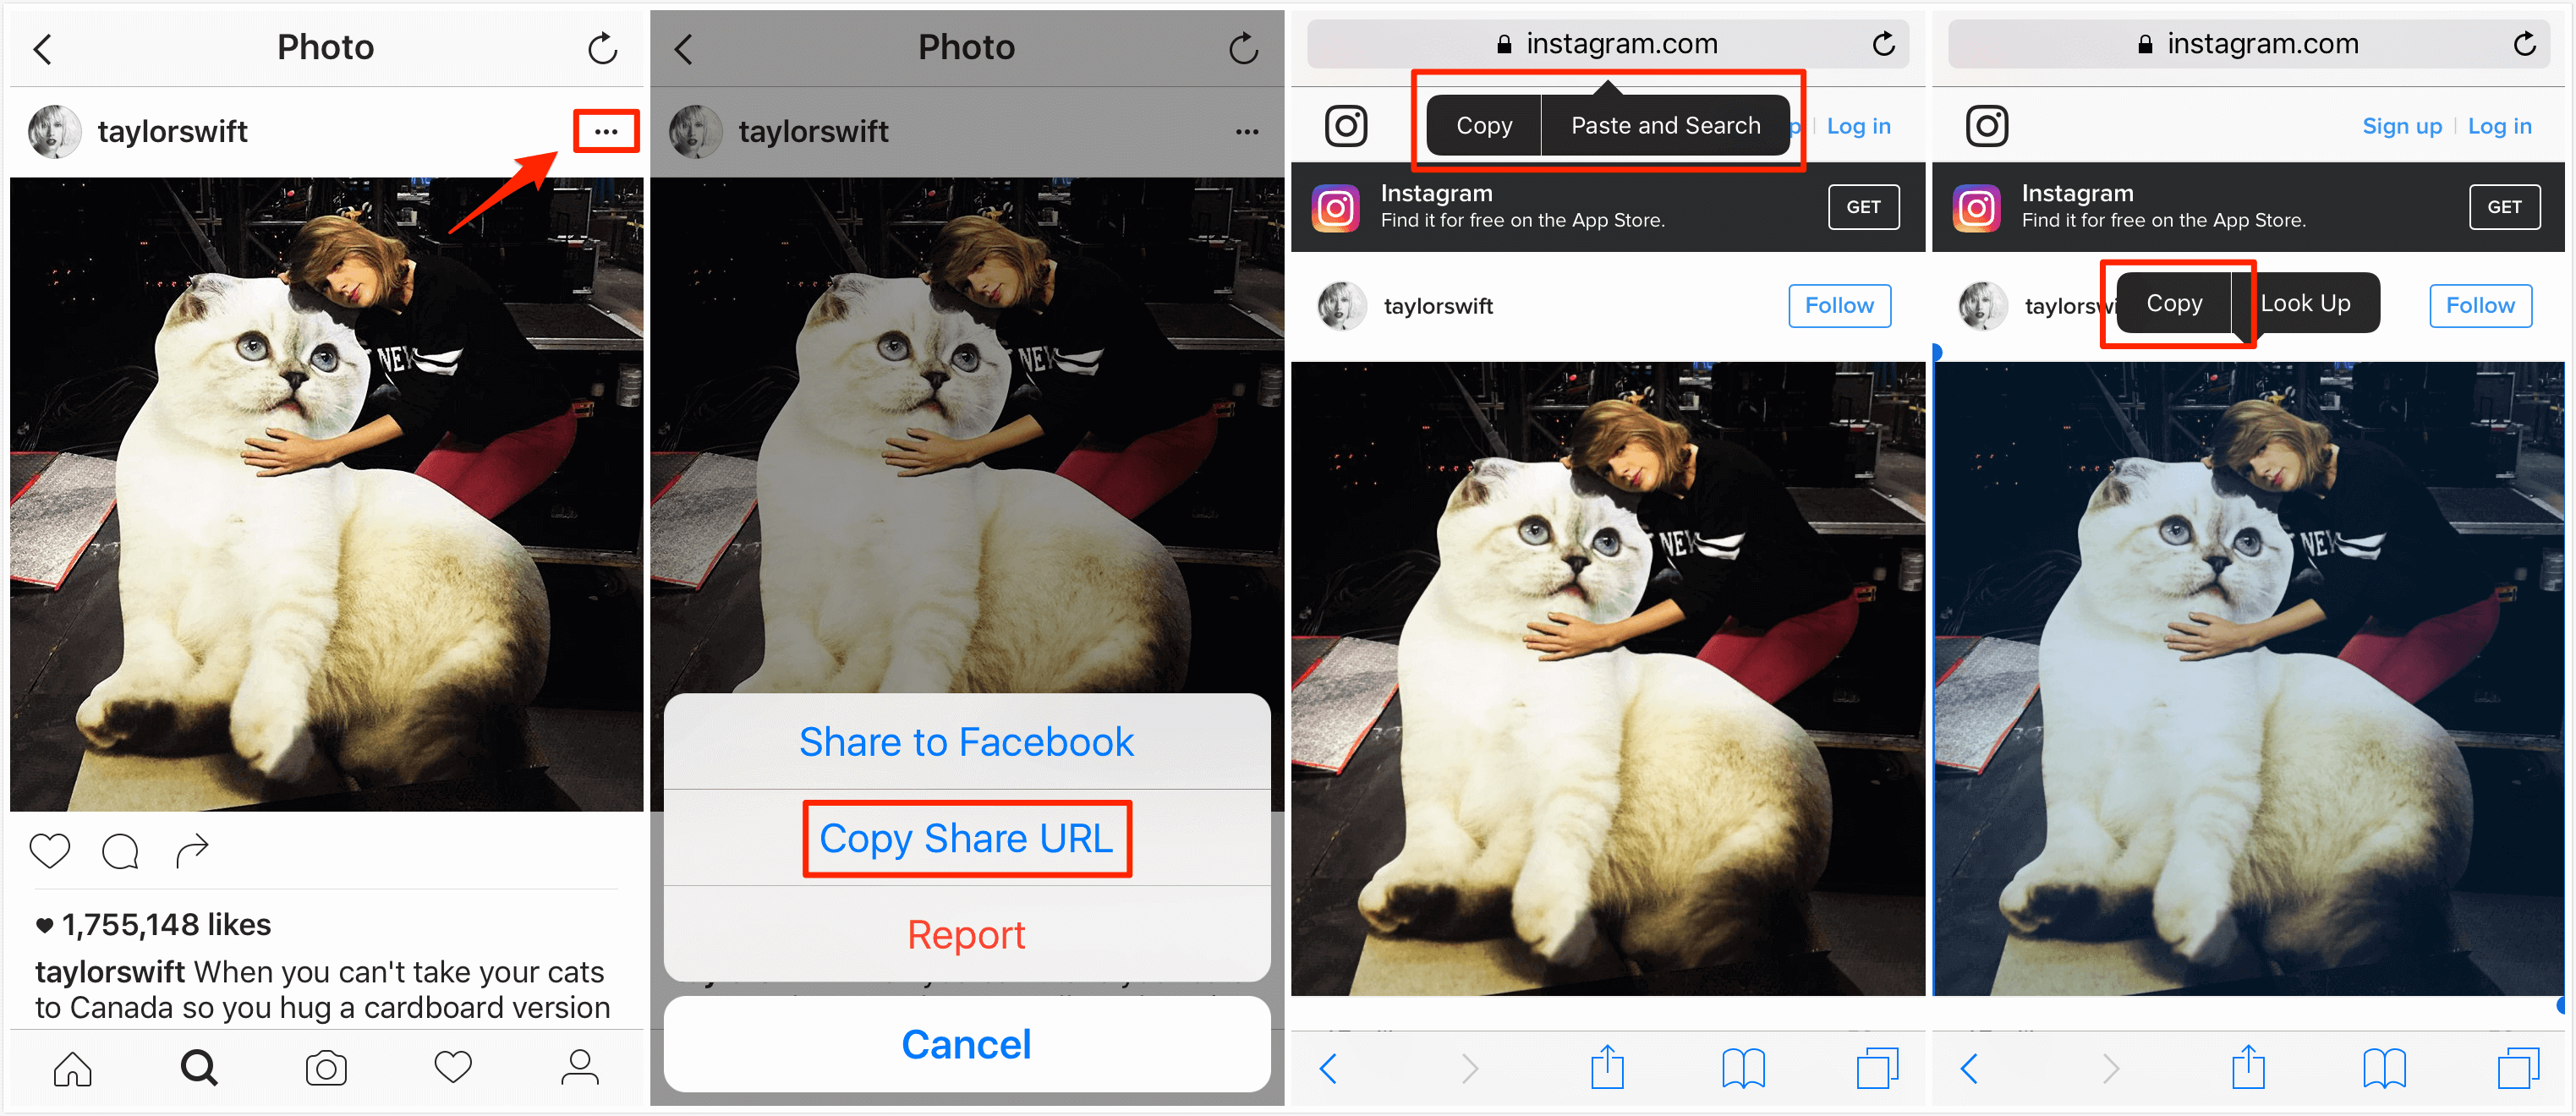 How to Save Instagram Photos on iPhone/iPad – Step 2